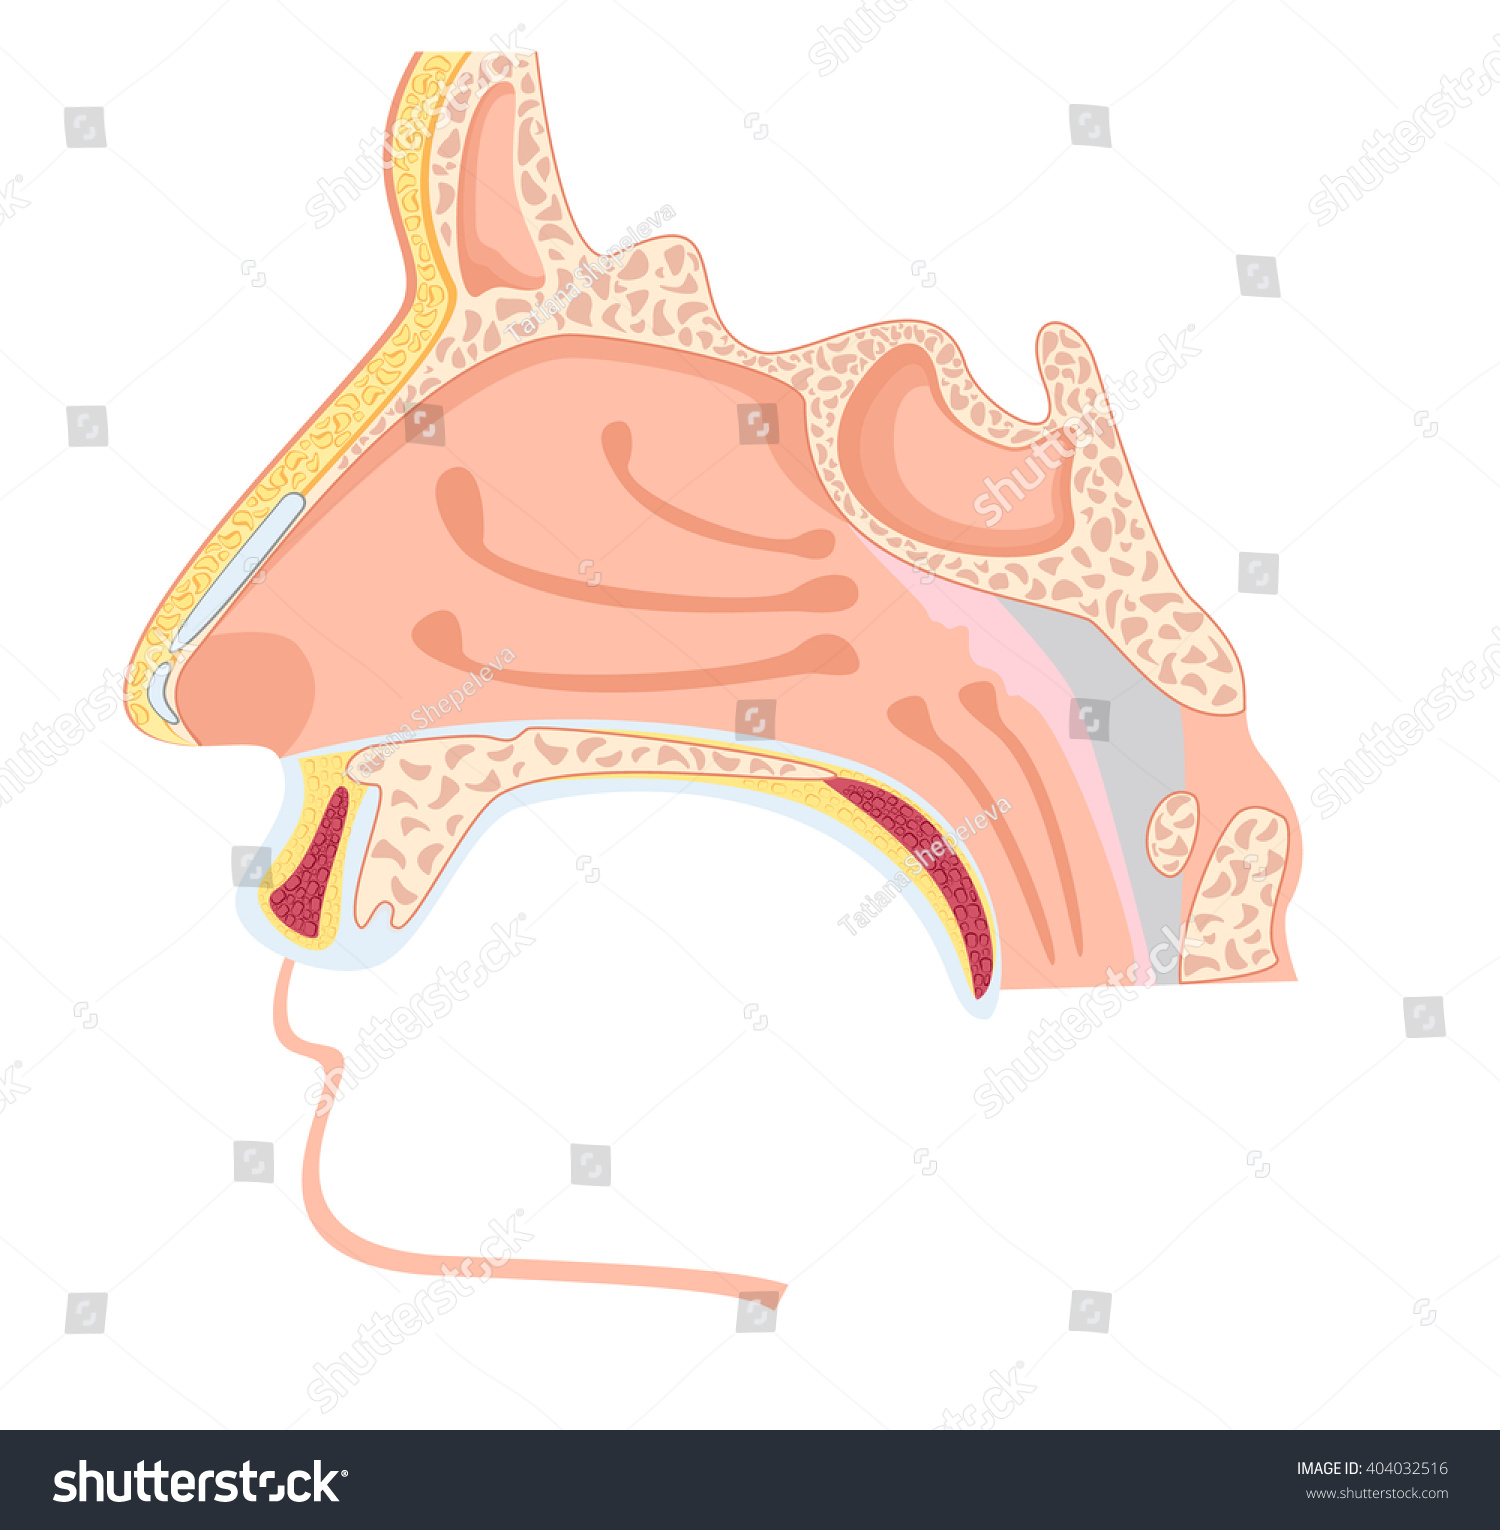 Nasal Cavity Vector Illustration Human Nose Stock Vector 404032516